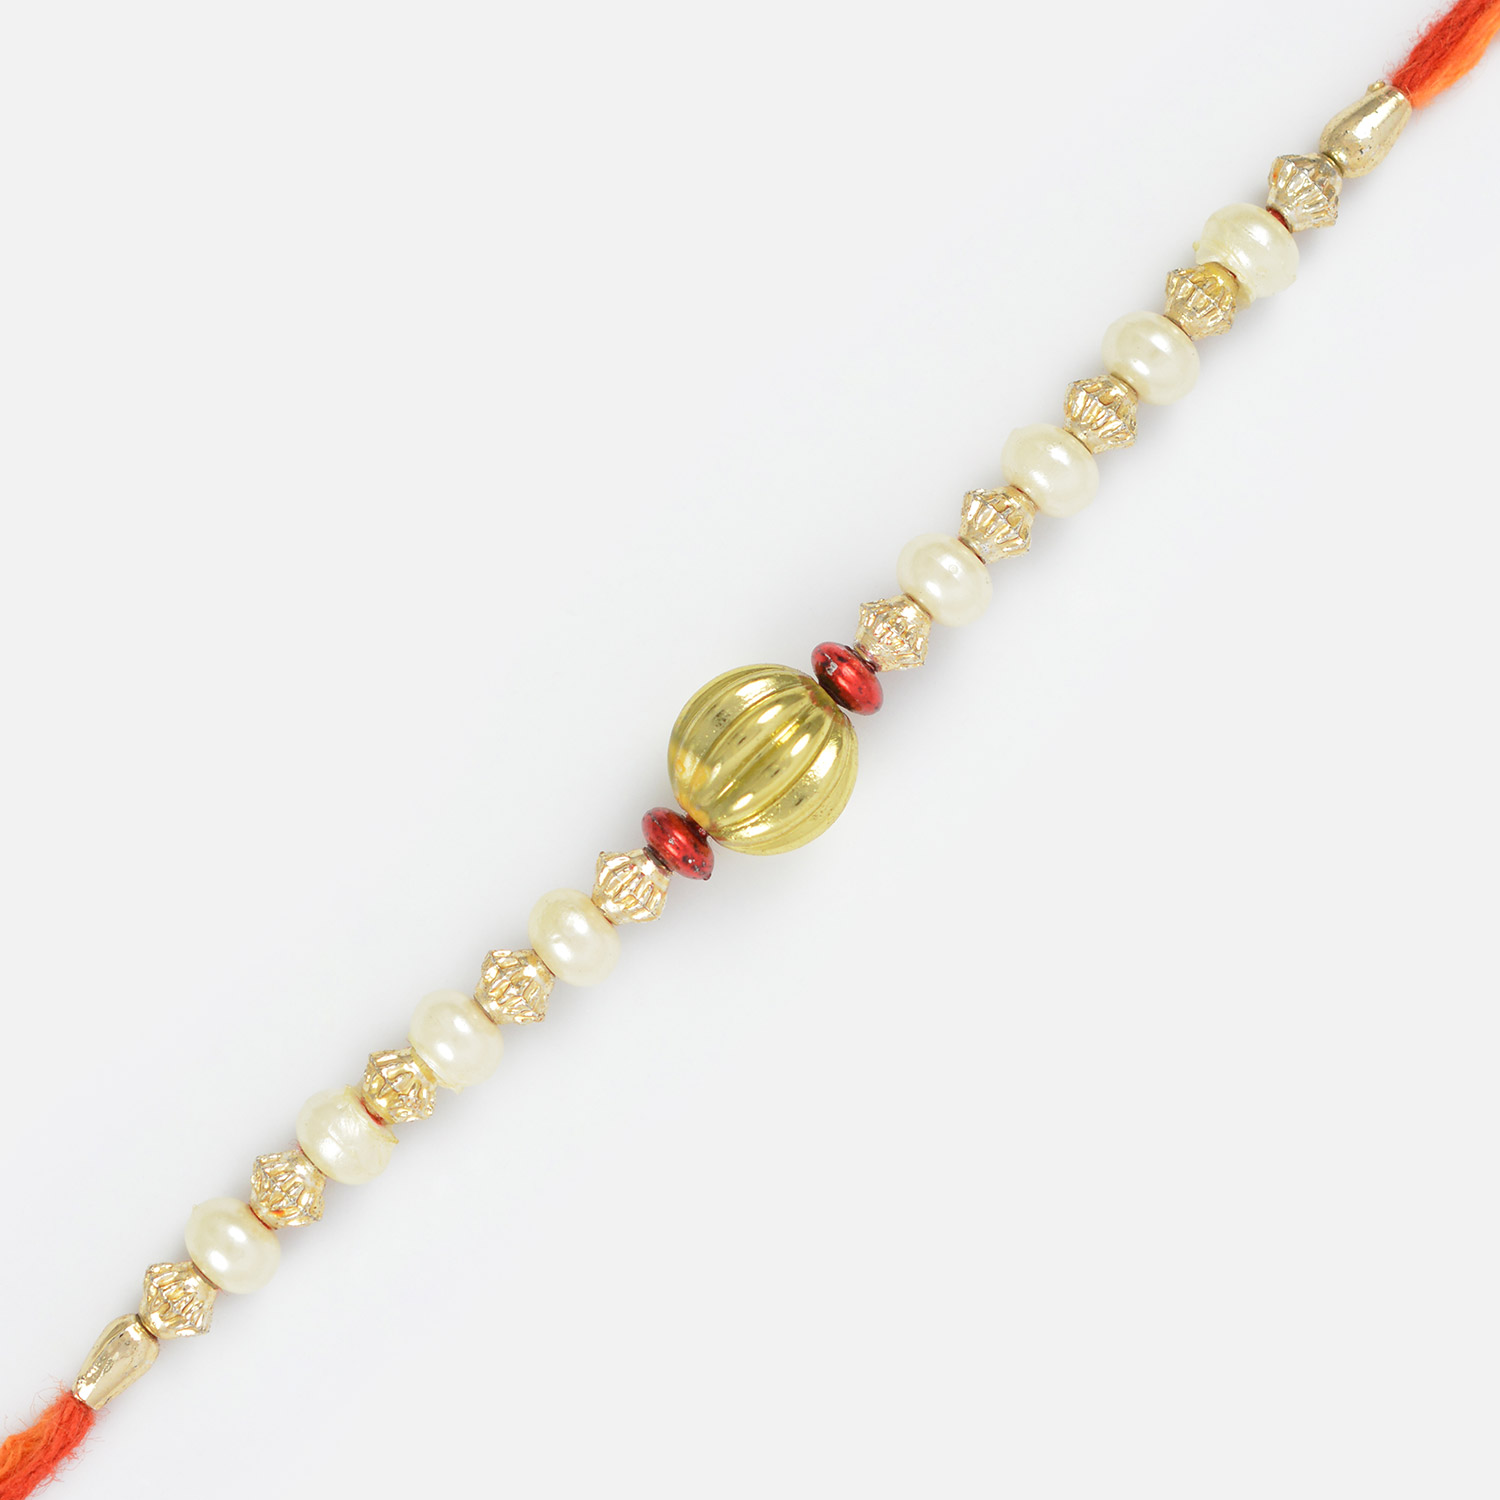 Central Beads Special Rakhi for Brother with White Pearl